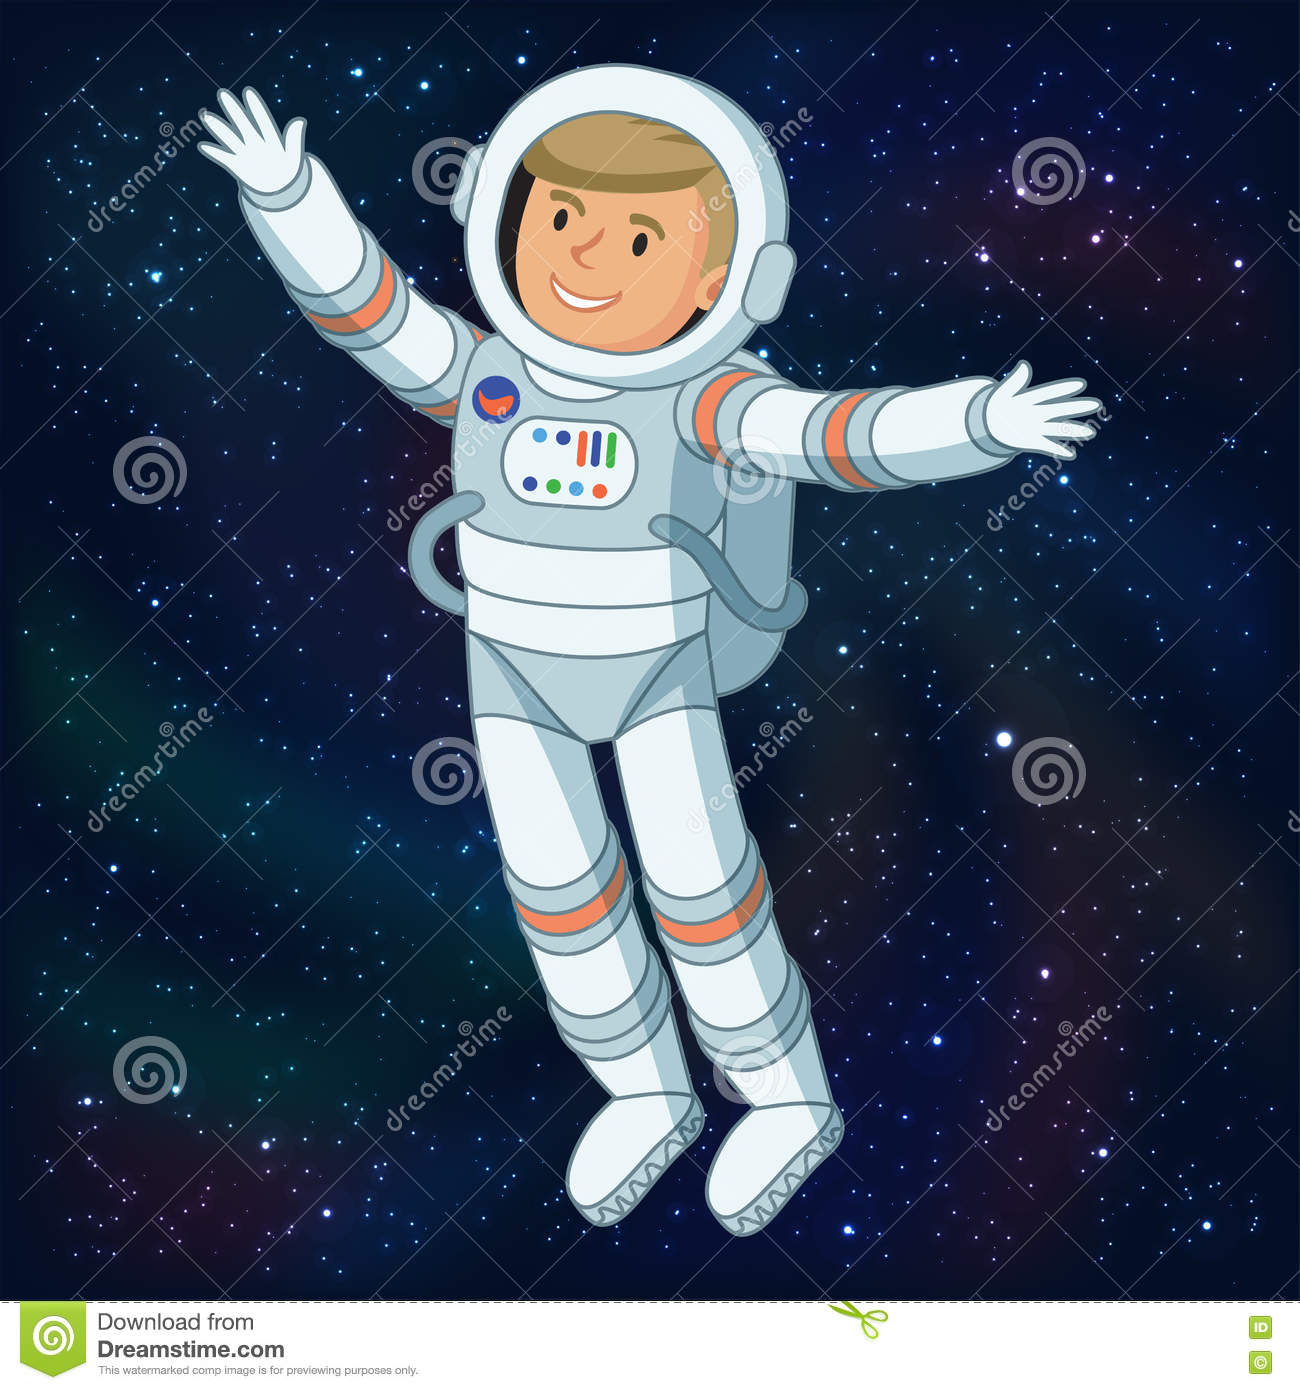 Astronaut in outer space astronaut floating in space for Outer space scene